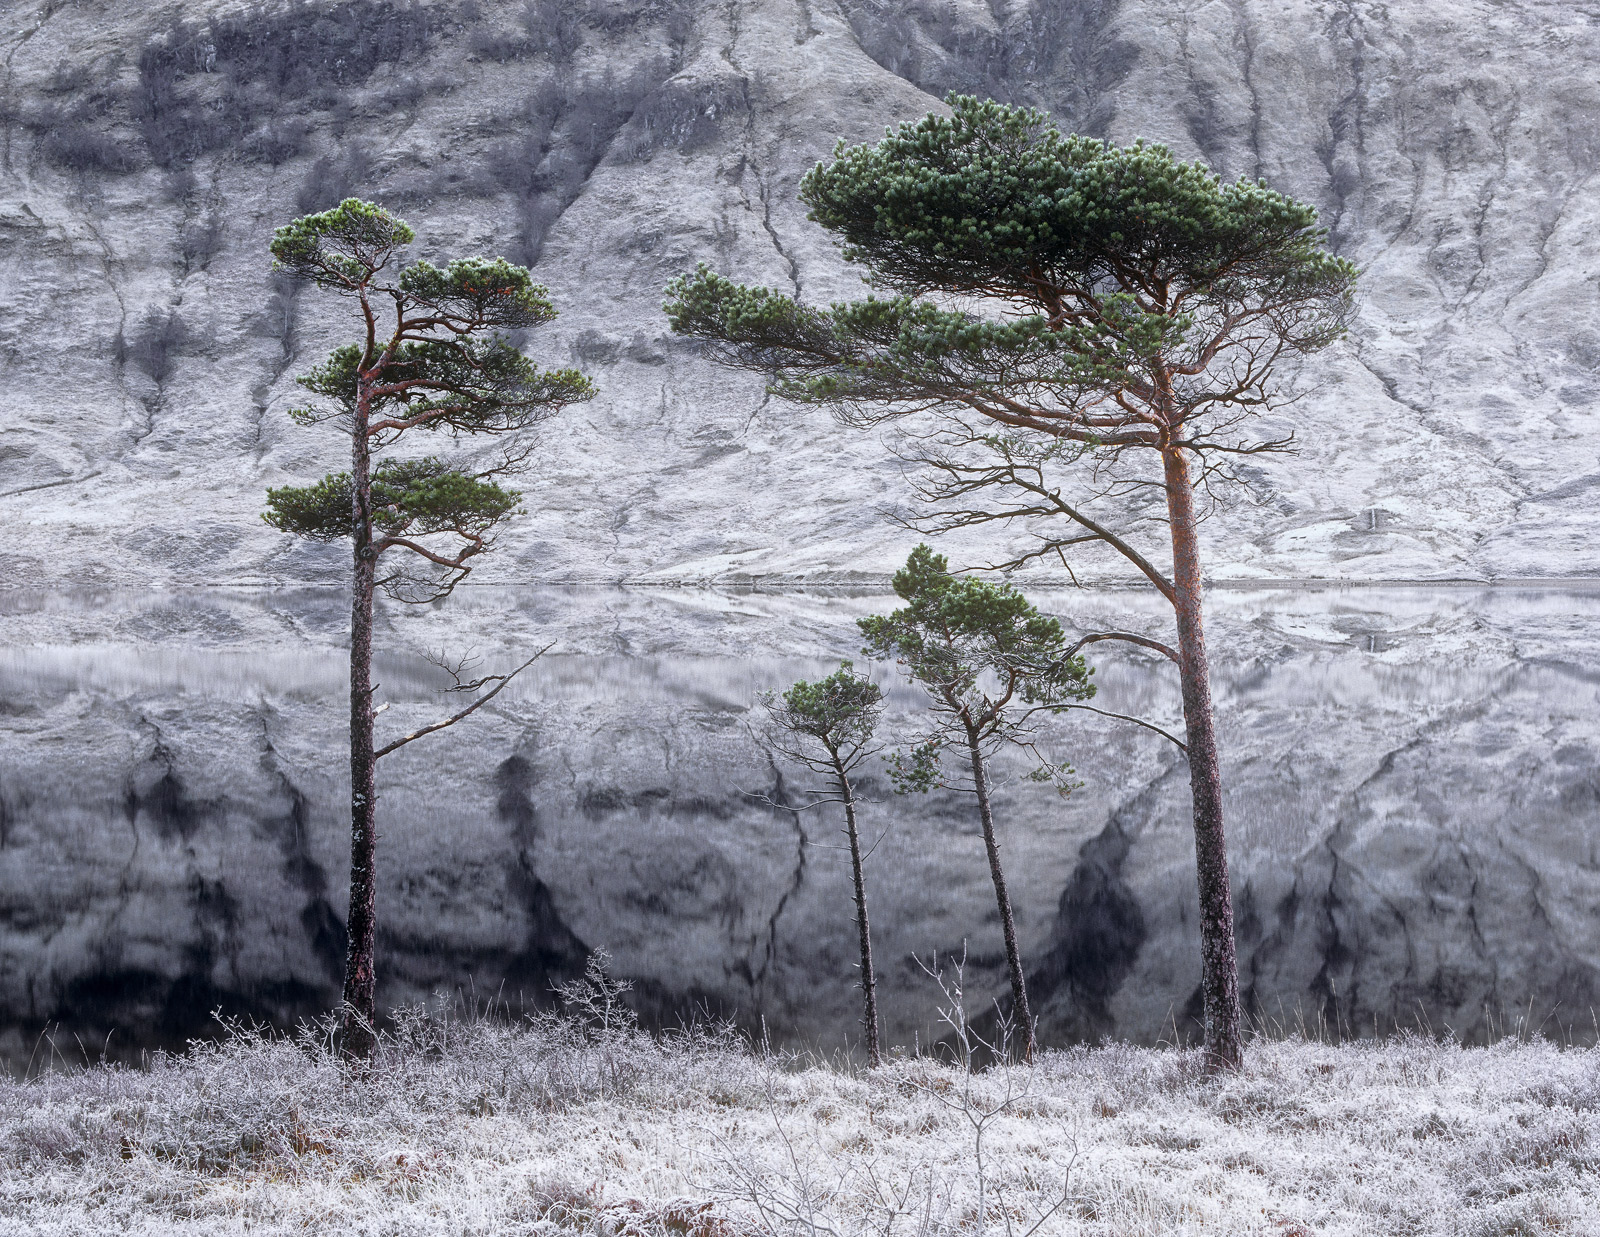 A little family of straggly Scots pine at the edge of deep frosted Loch a Chroisg. The trees alone seem to have escaped...